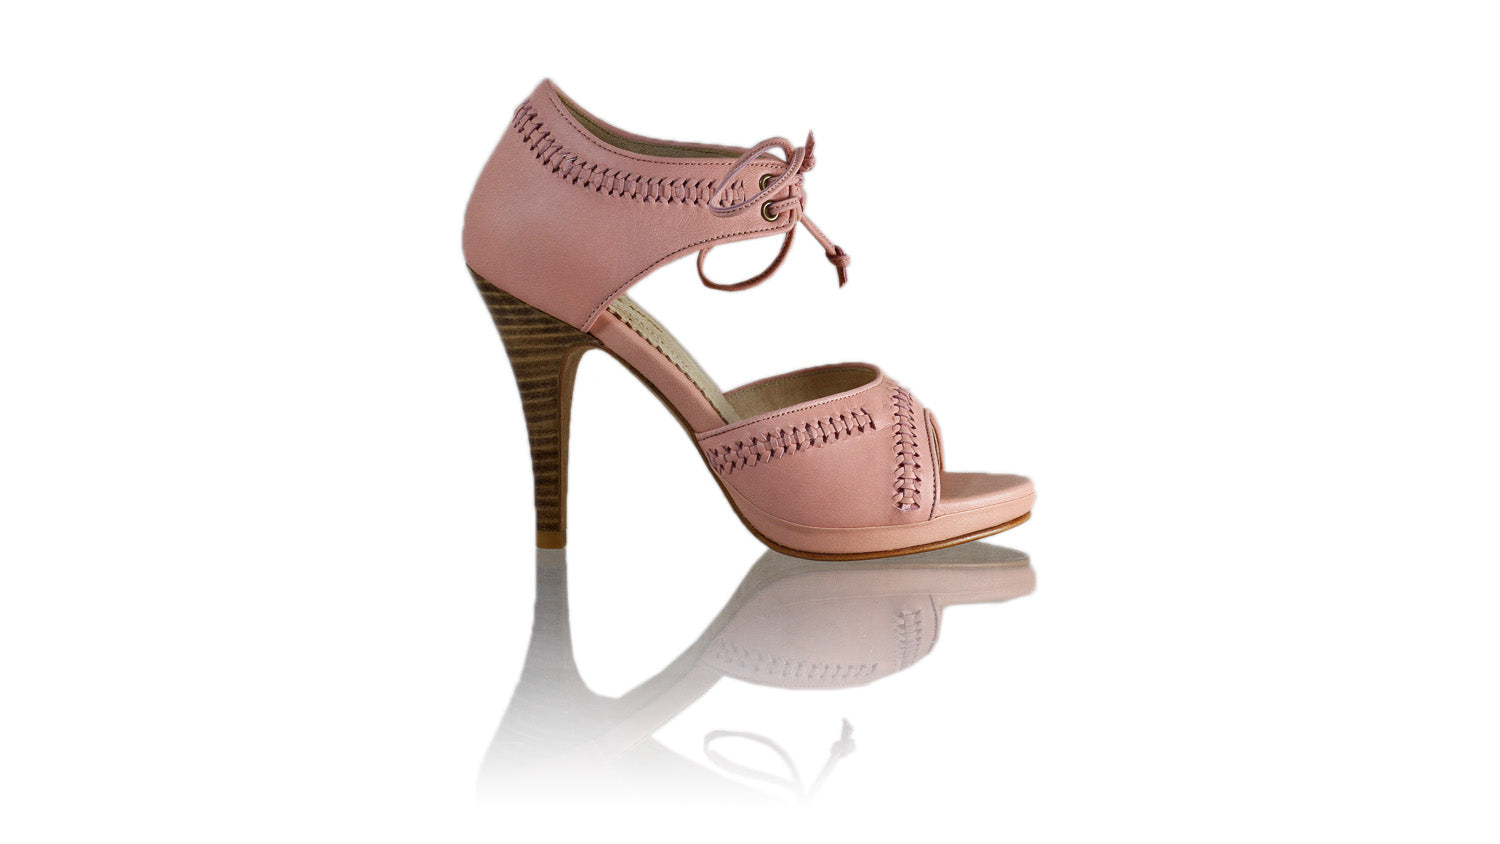 Leather-shoes-Karli 115mm SH-01 PF - Soft Pink-sandals higheel-NILUH DJELANTIK-NILUH DJELANTIK